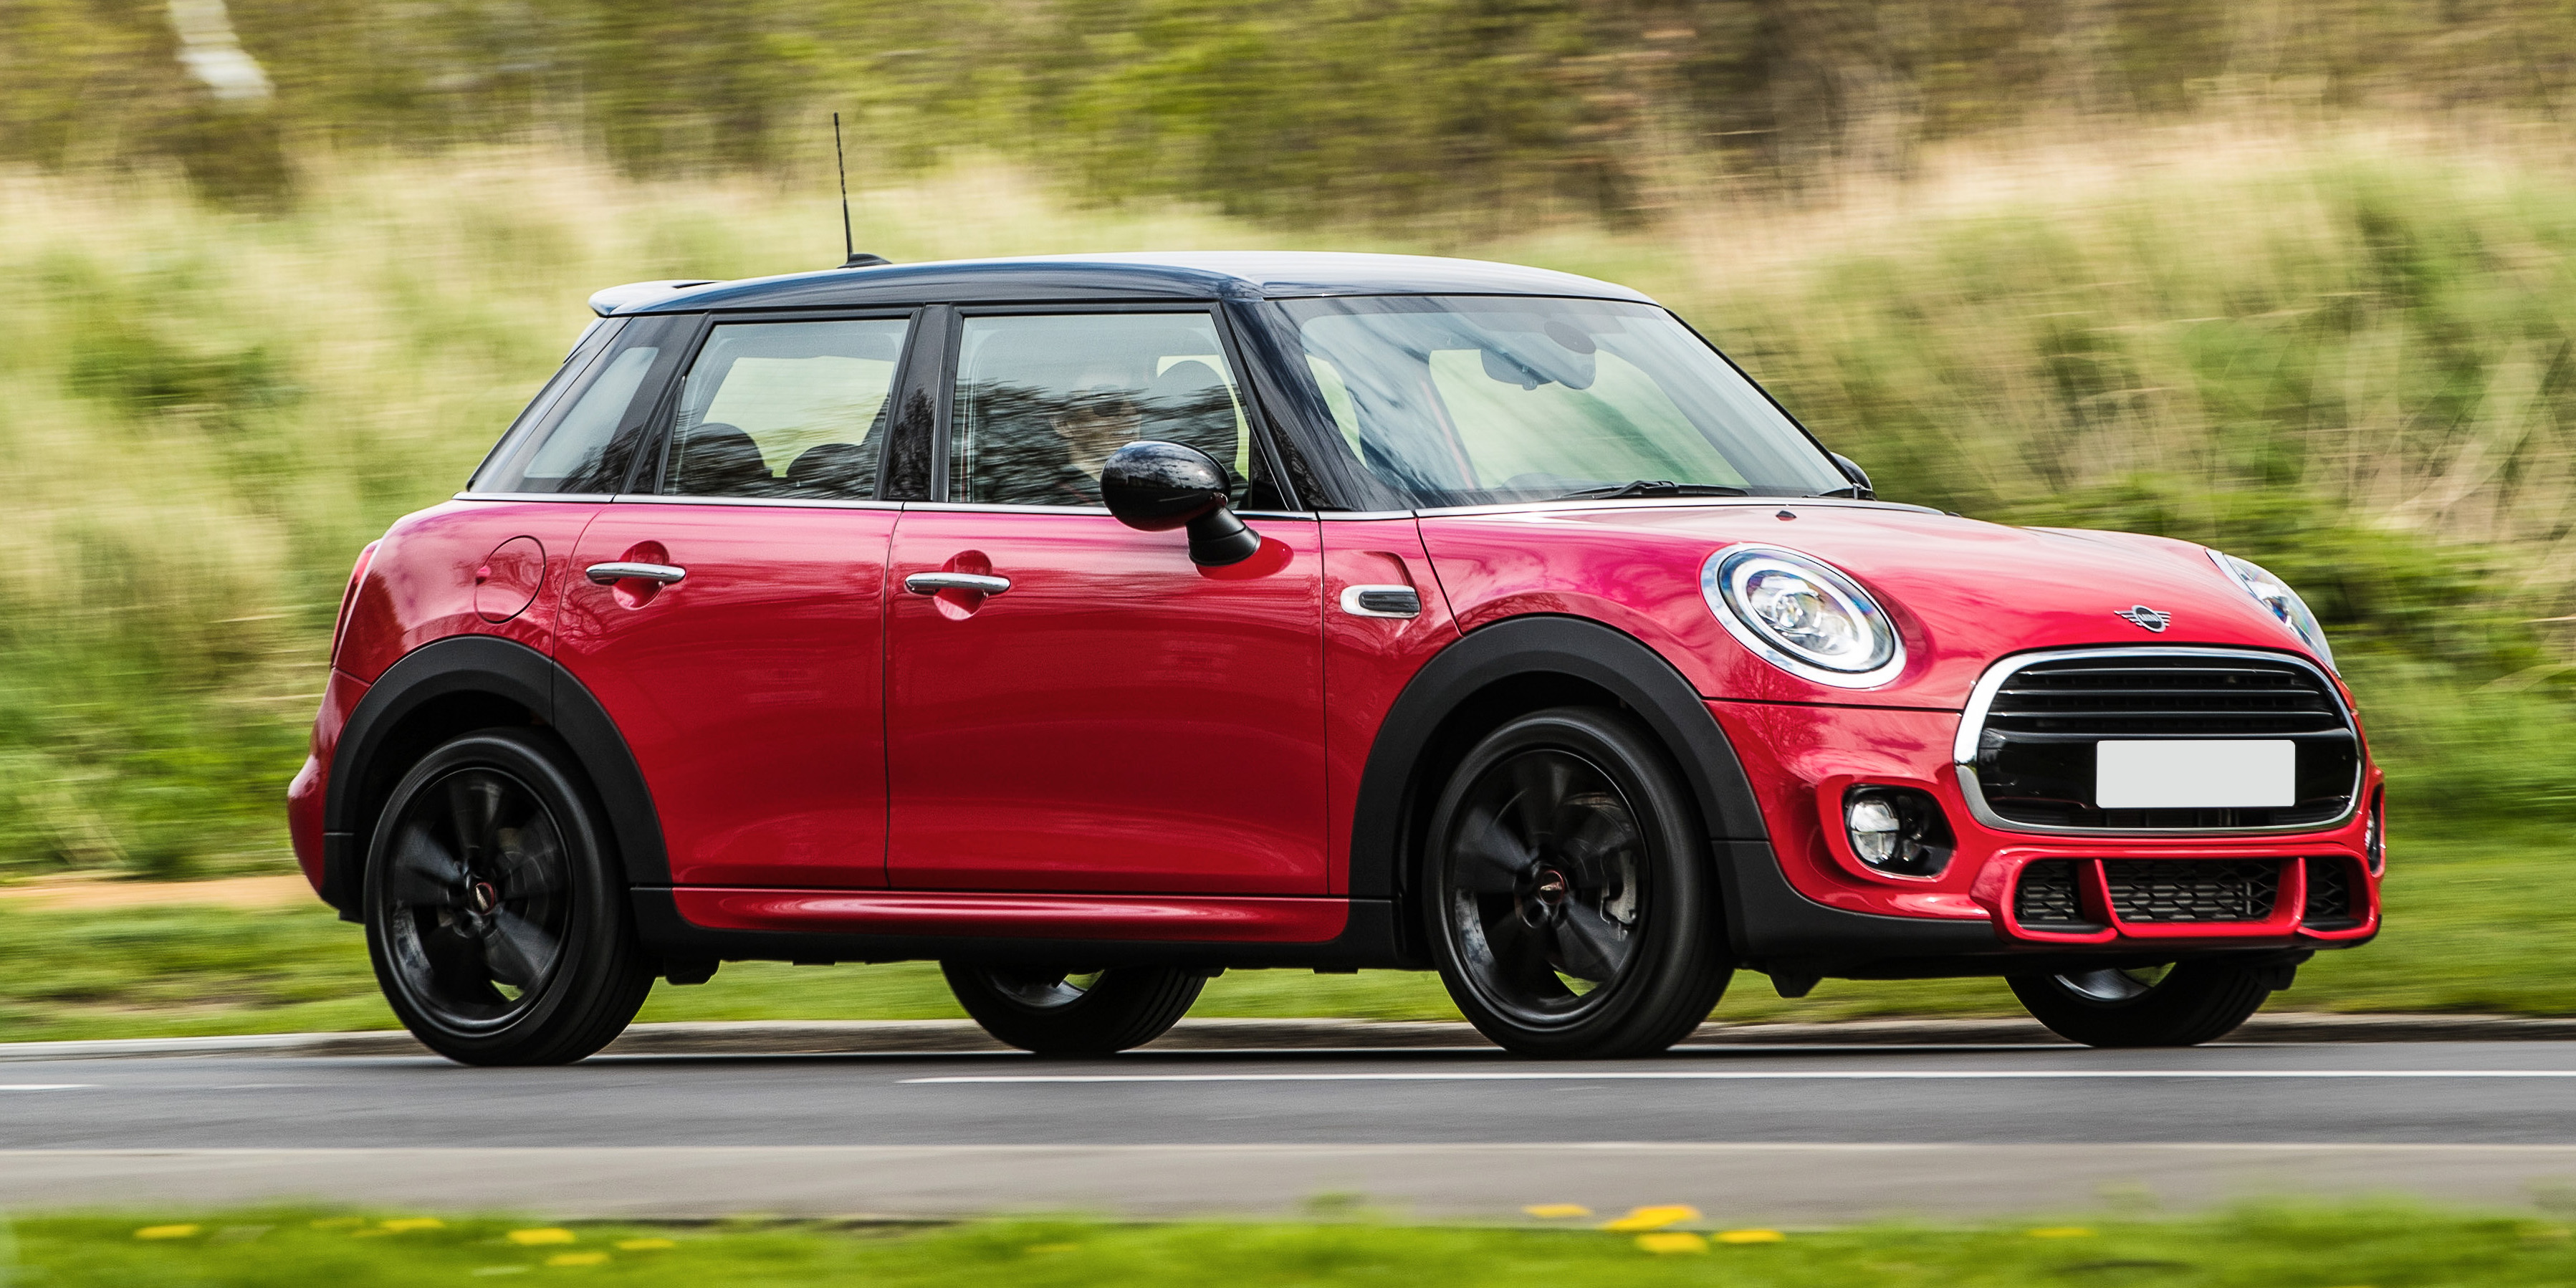 5 Door Car >> New Mini 5 Door Hatch Review Carwow